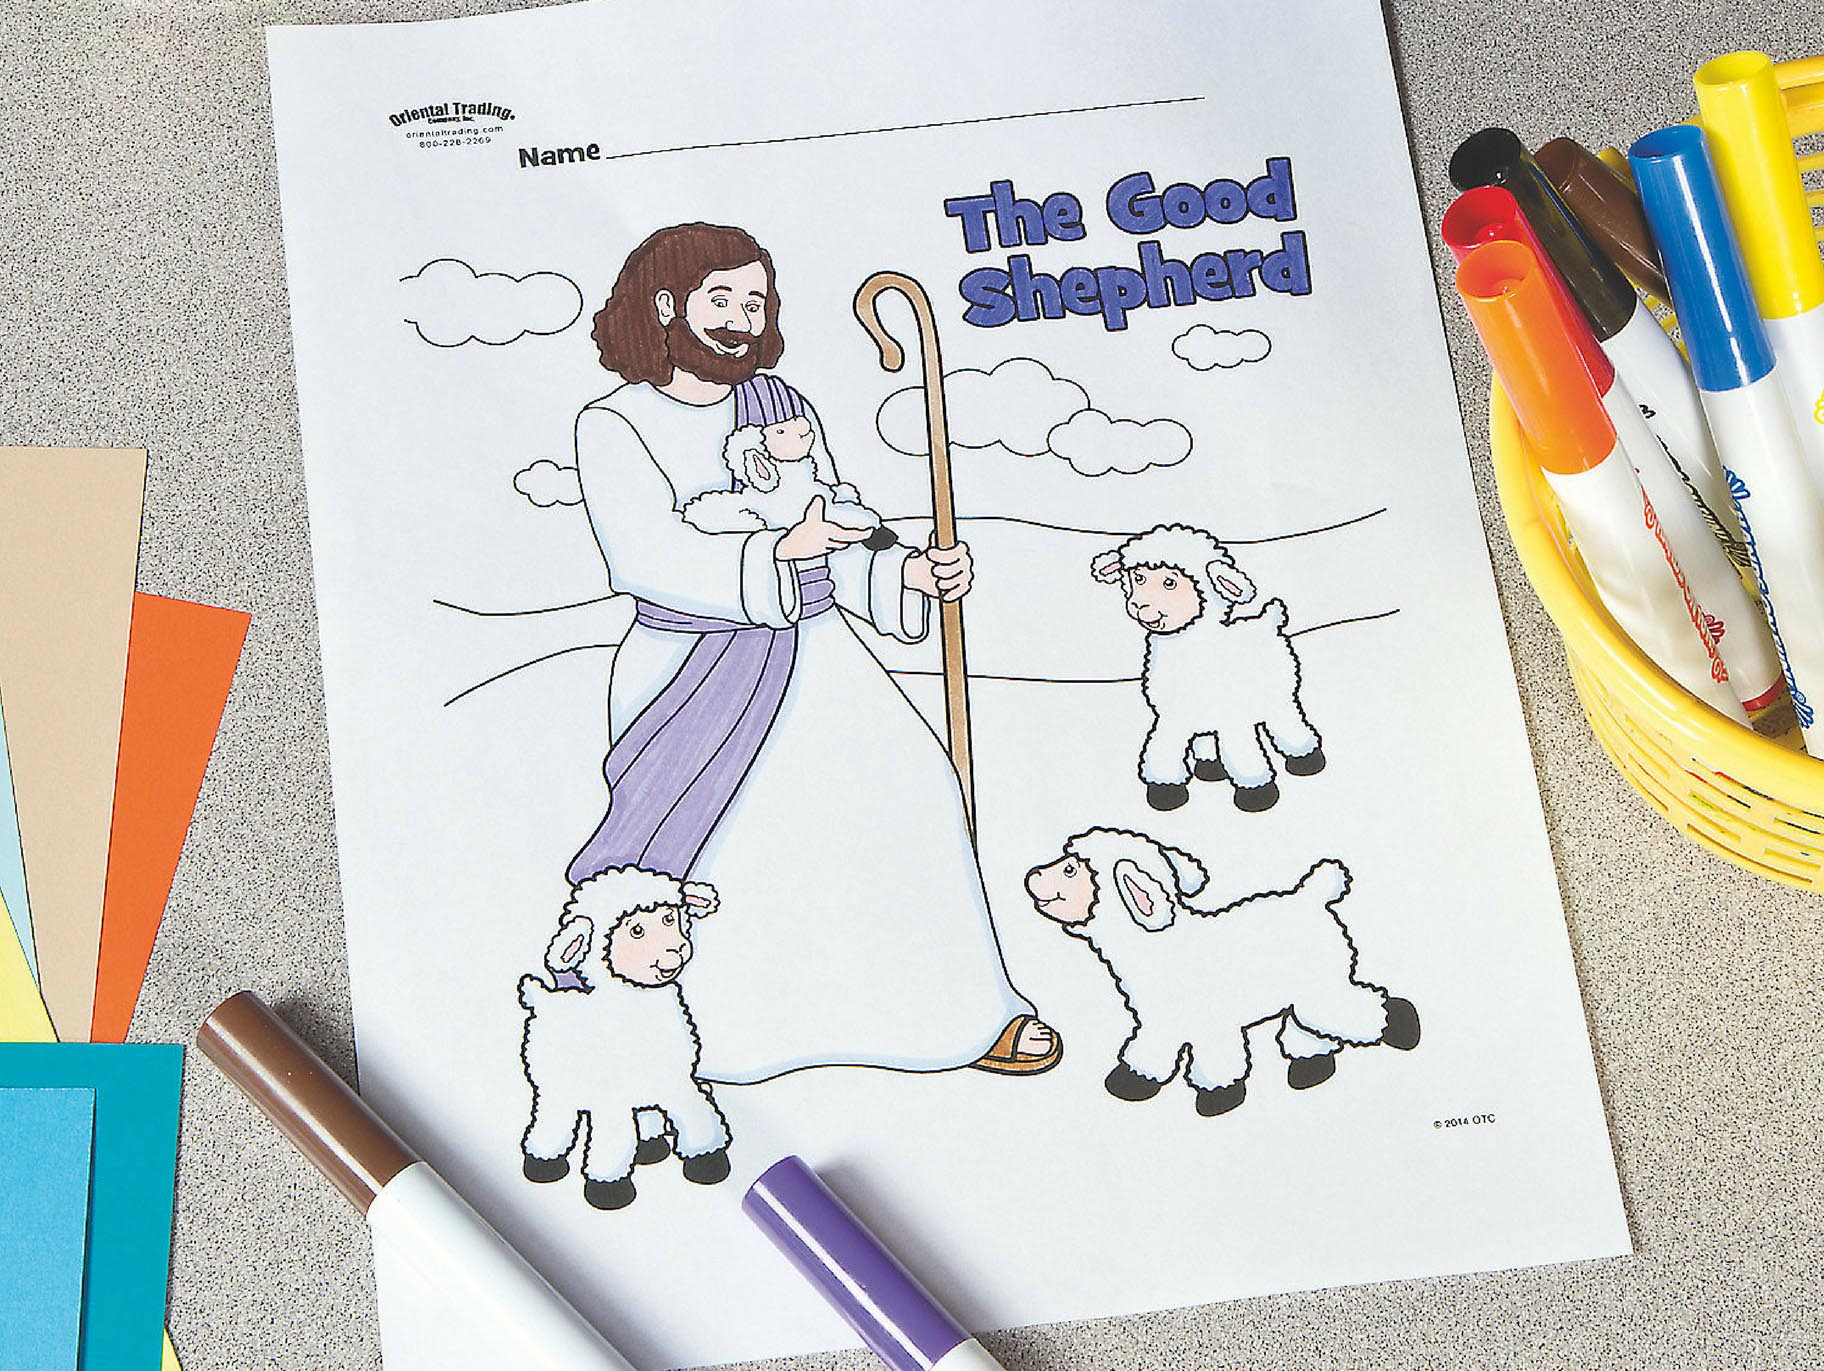 The Good Shepherd Coloring Page The Good Shepherd Free Printable Coloring Page Fun365